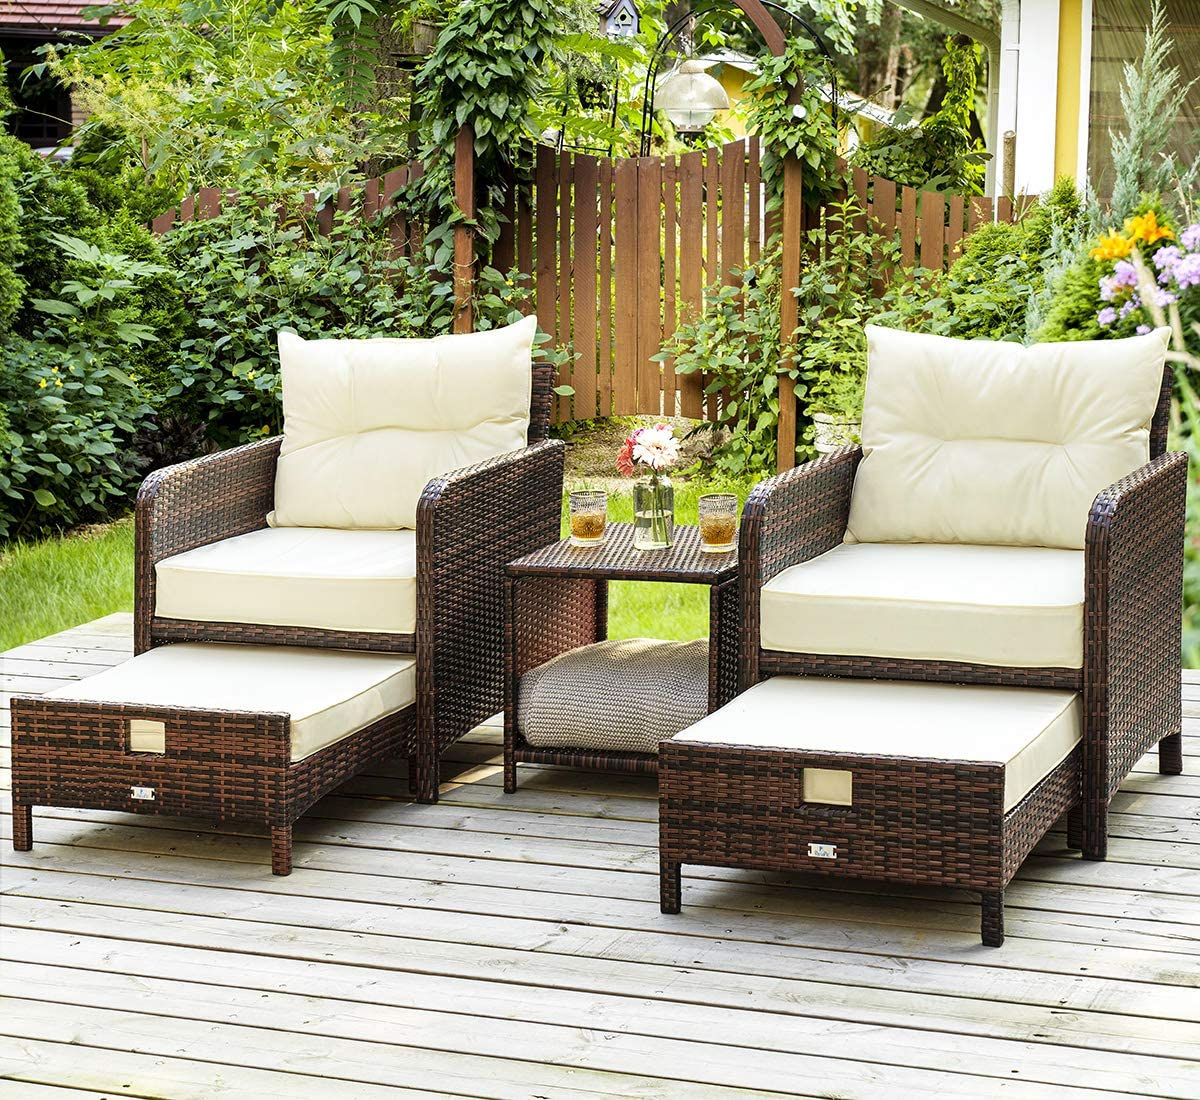 Amazon Com Pamapic 5 Pieces Wicker Patio Furniture Set Outdoor